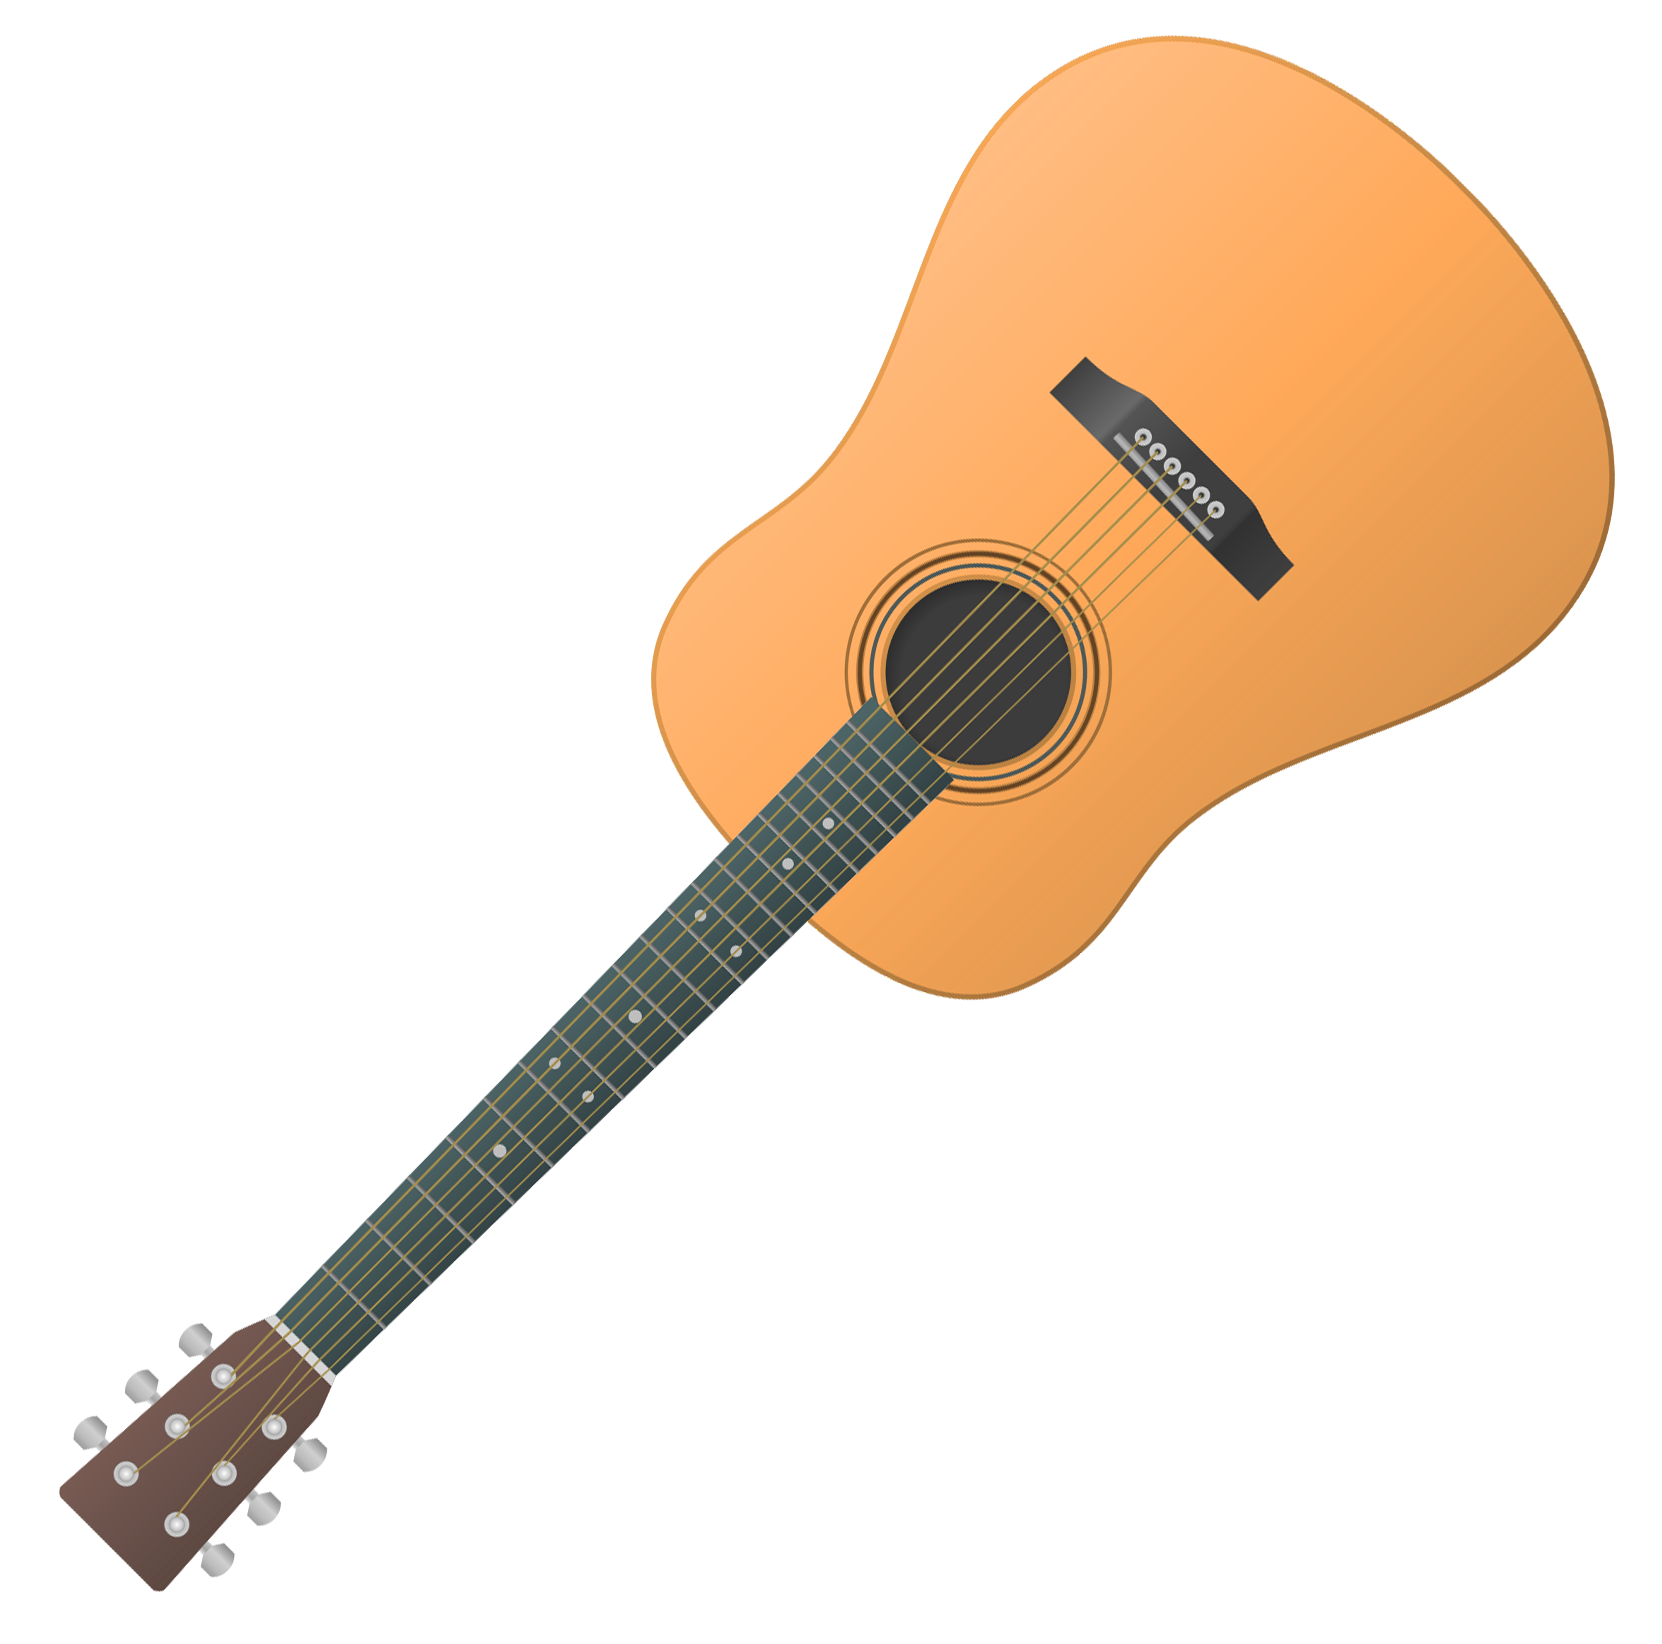 Guitar Vector PNG Transparent Image - PNG Style